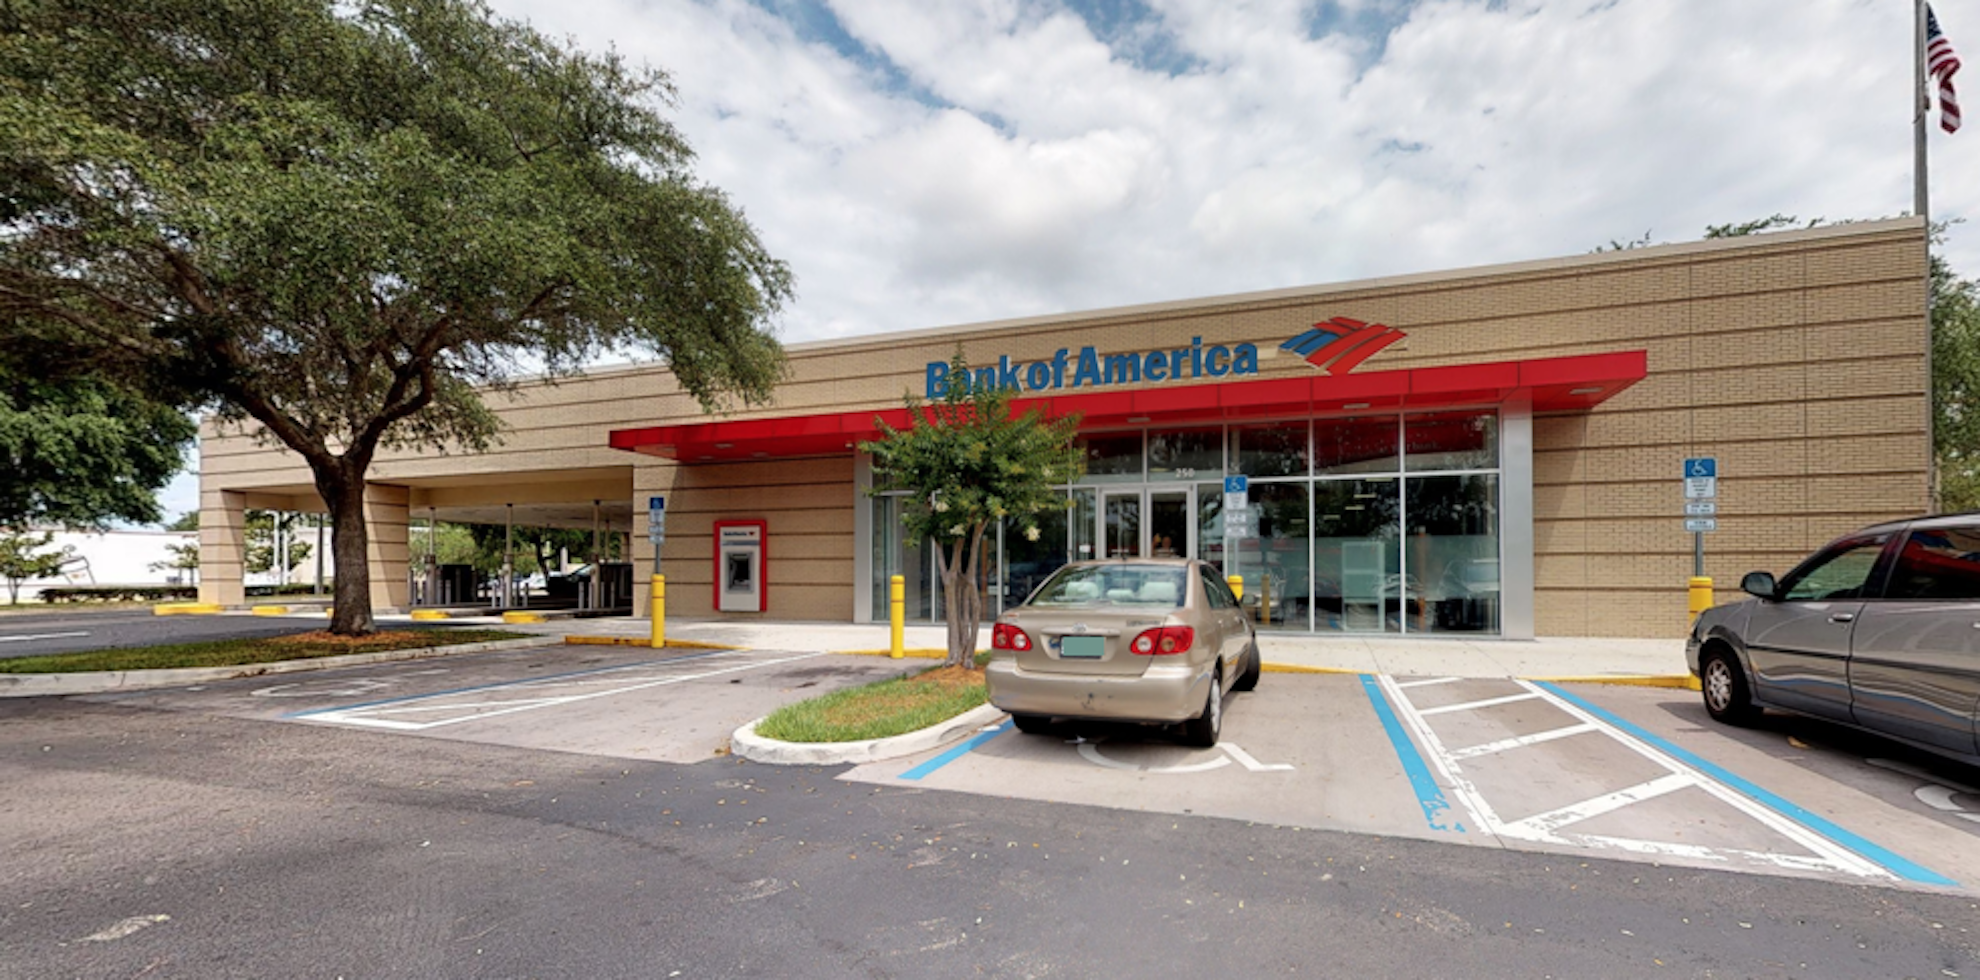 Bank of America financial center with drive-thru ATM and teller | 250 E Bearss Ave, Tampa, FL 33613